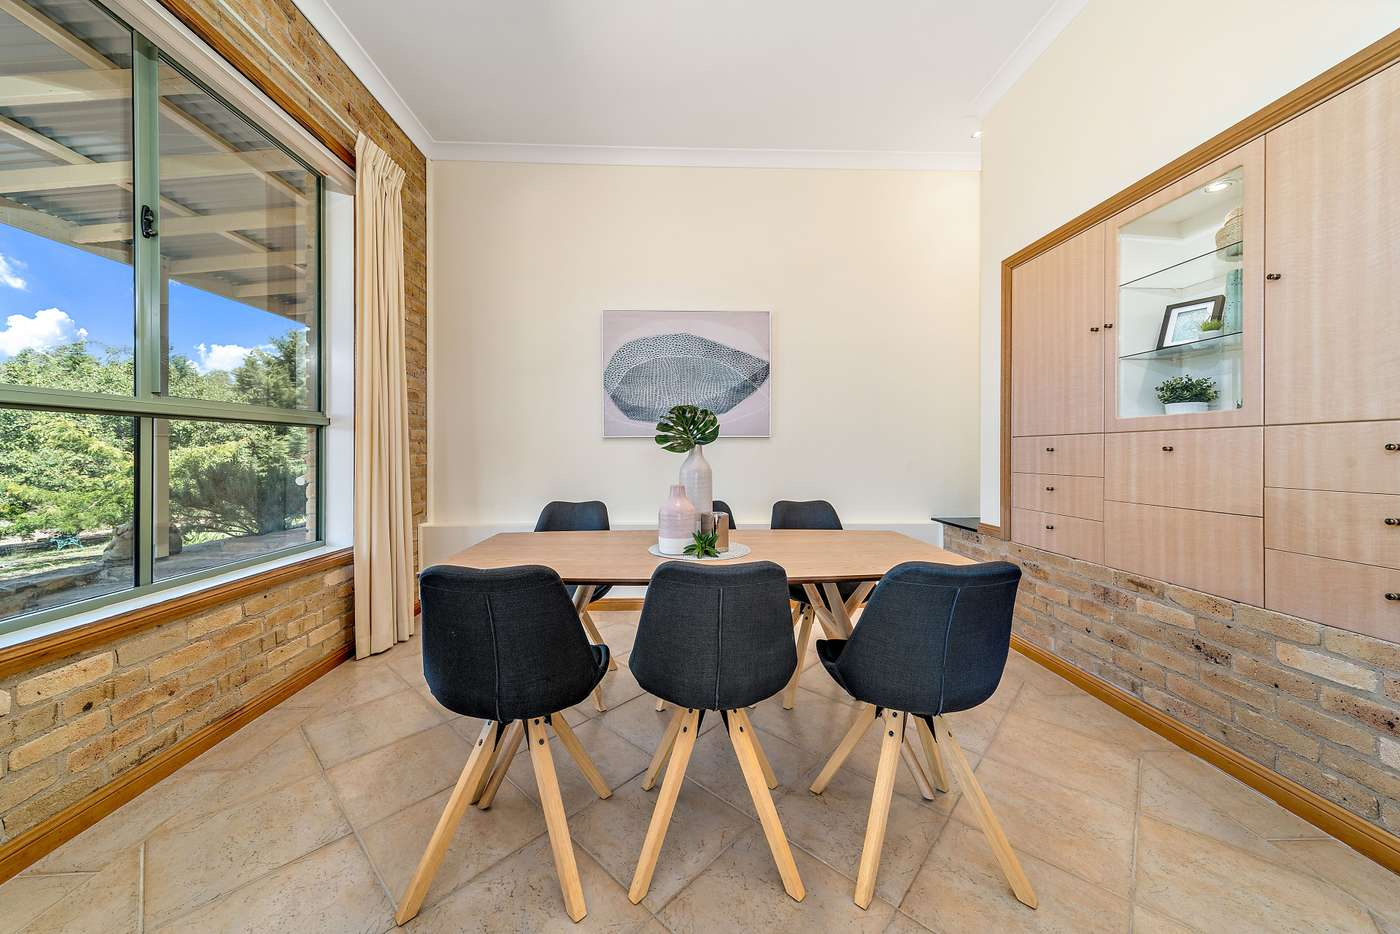 Seventh view of Homely house listing, 278 Shingle Hill Way, Gundaroo NSW 2620